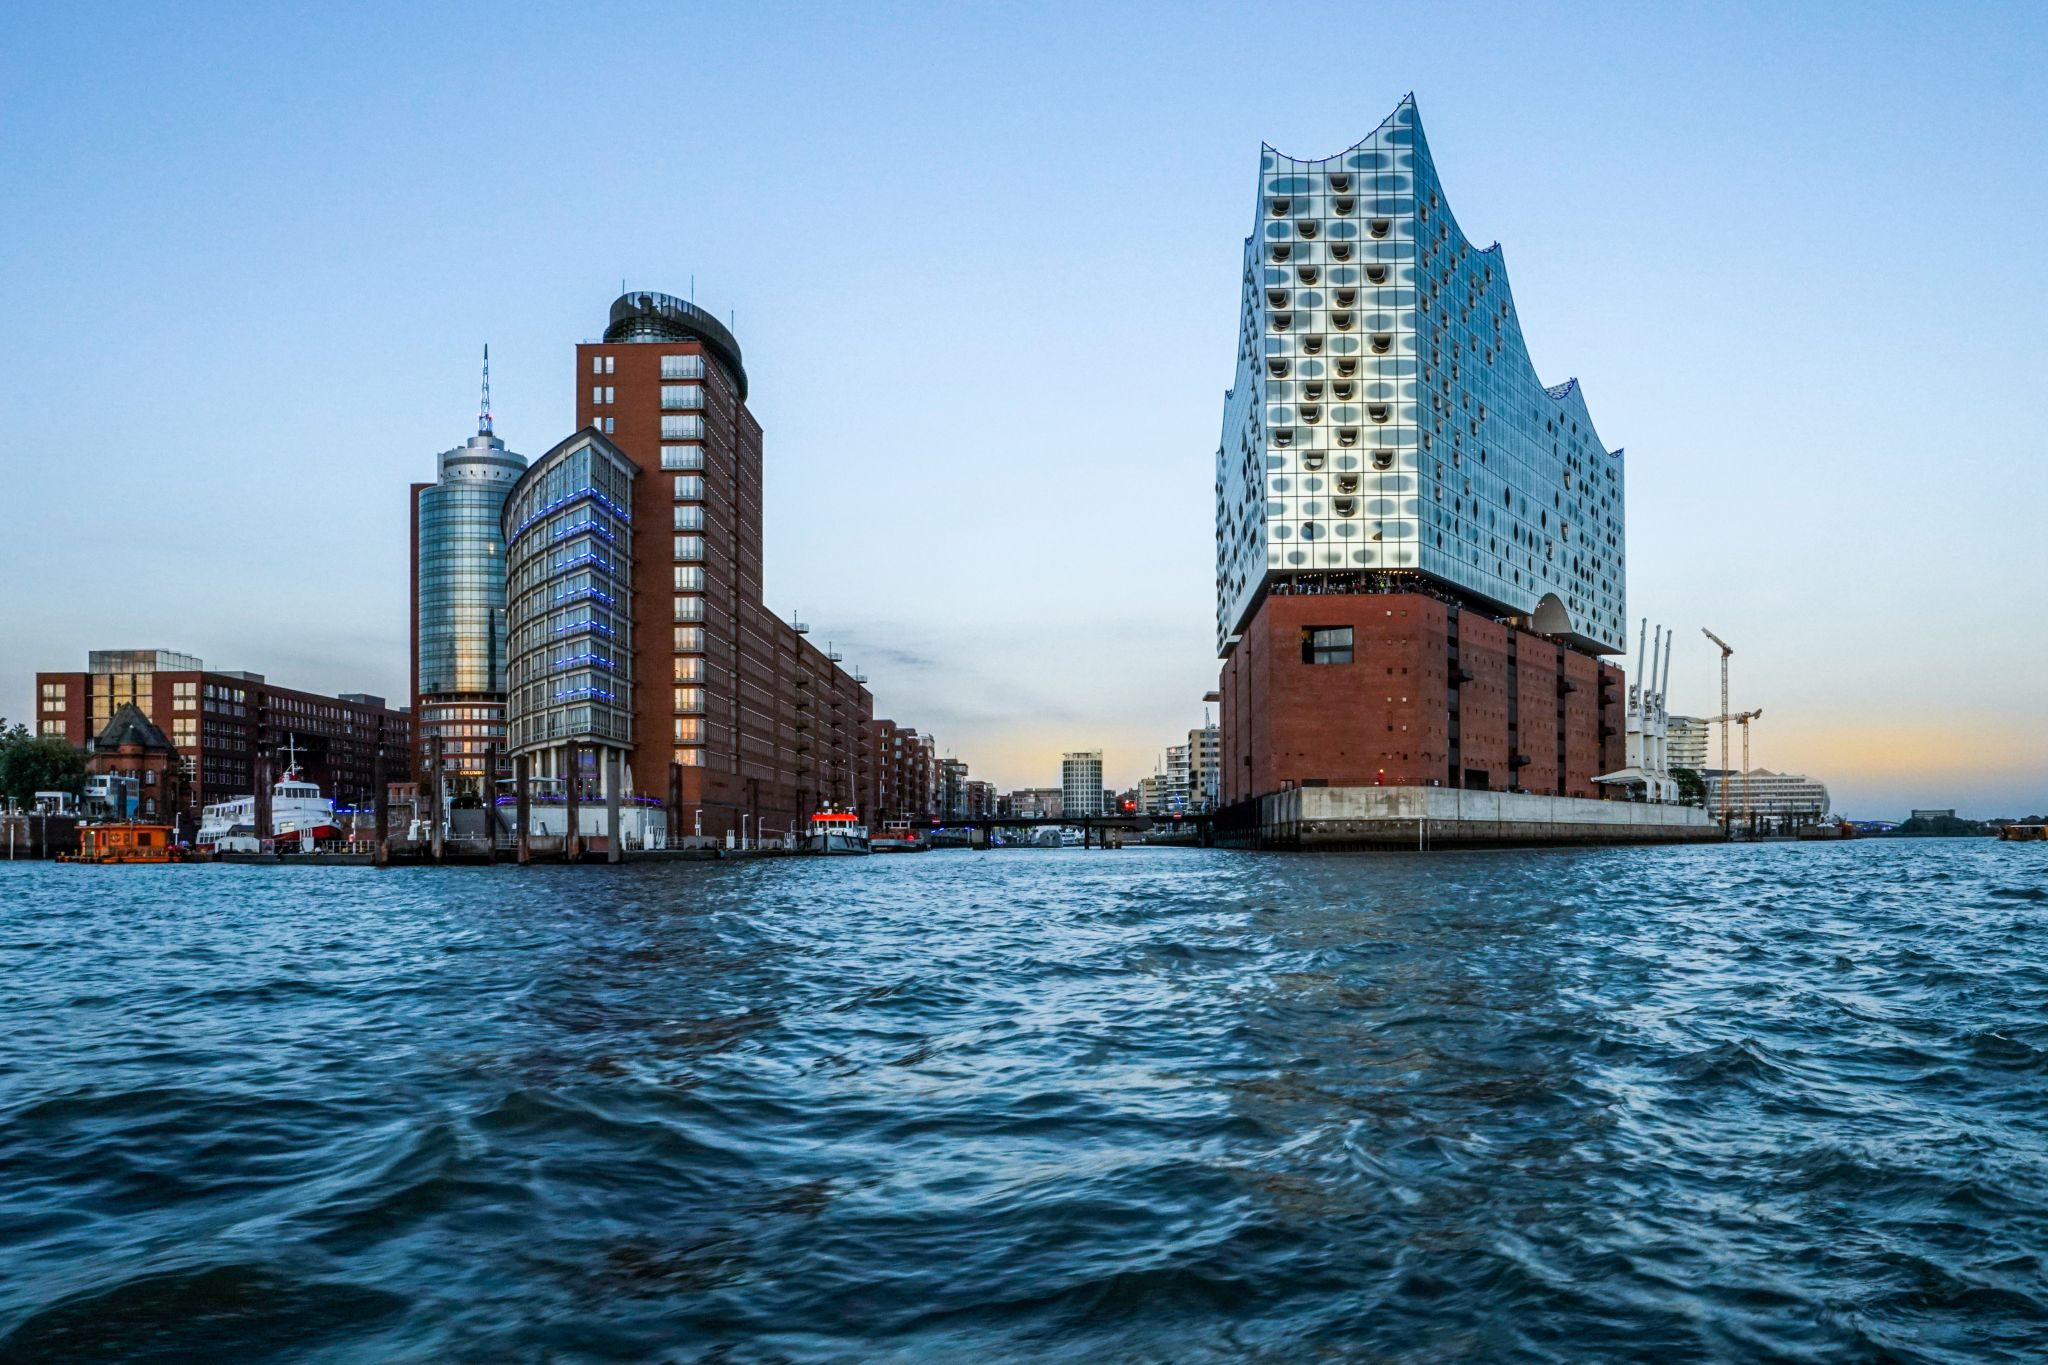 Elbphilharmonie, view from a boat, Germany